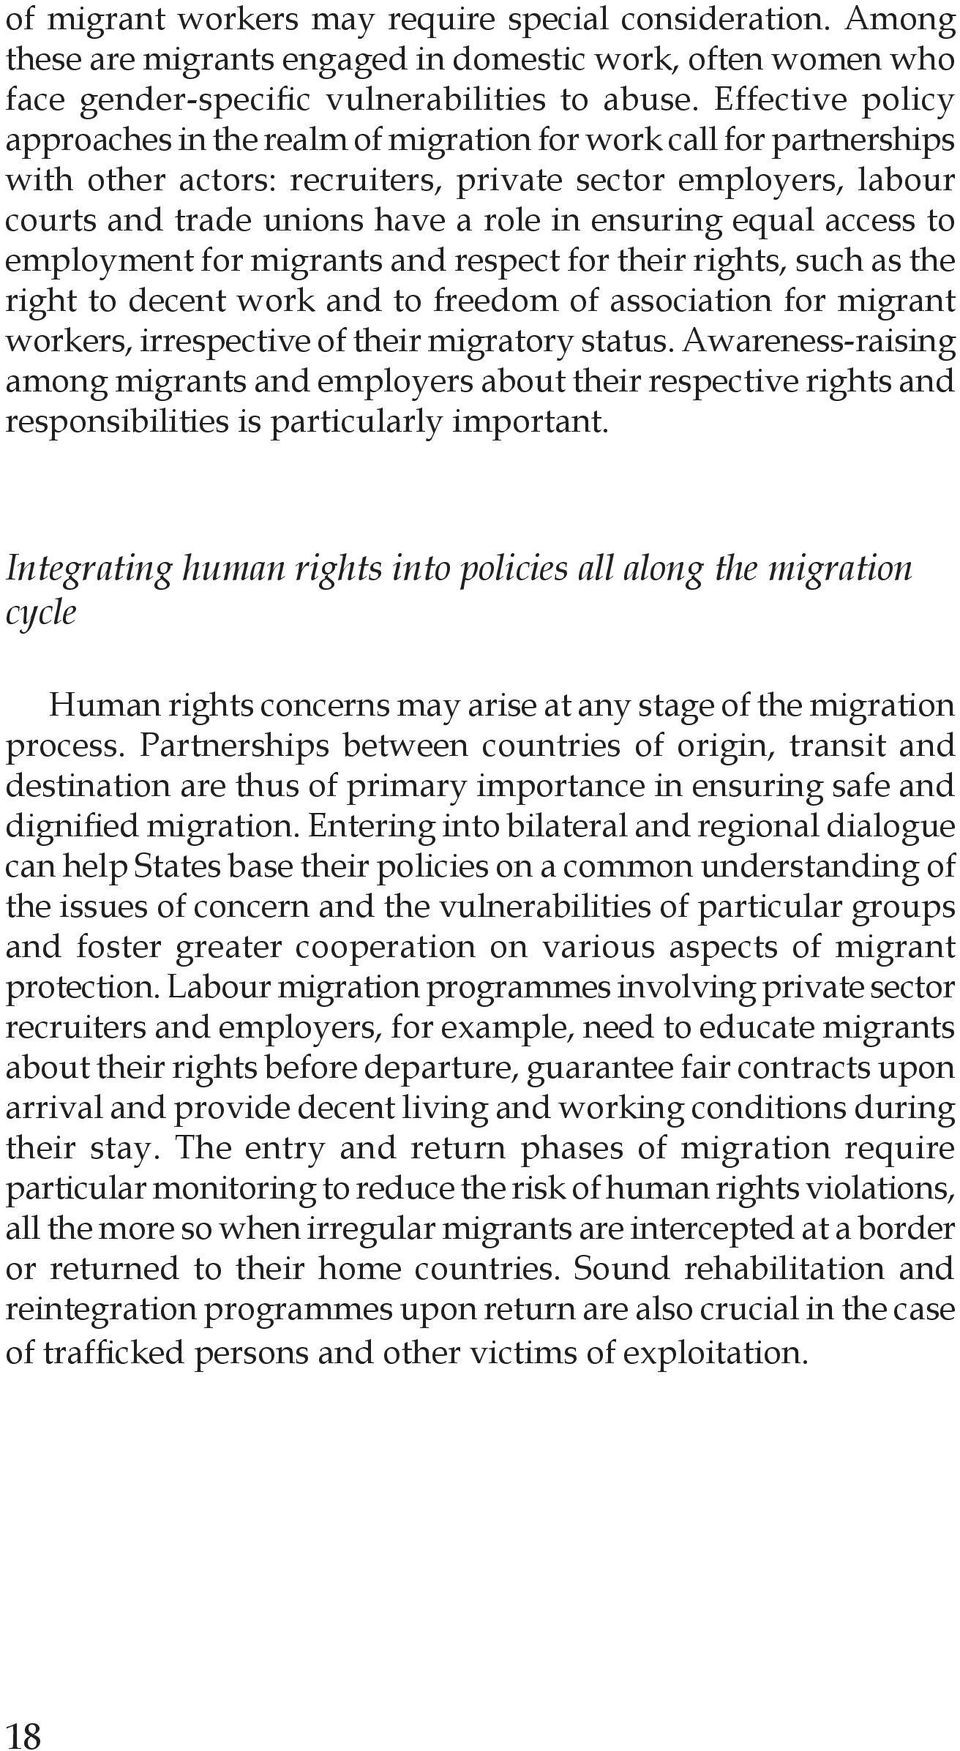 equal access to employment for migrants and respect for their rights, such as the right to decent work and to freedom of association for migrant workers, irrespective of their migratory status.